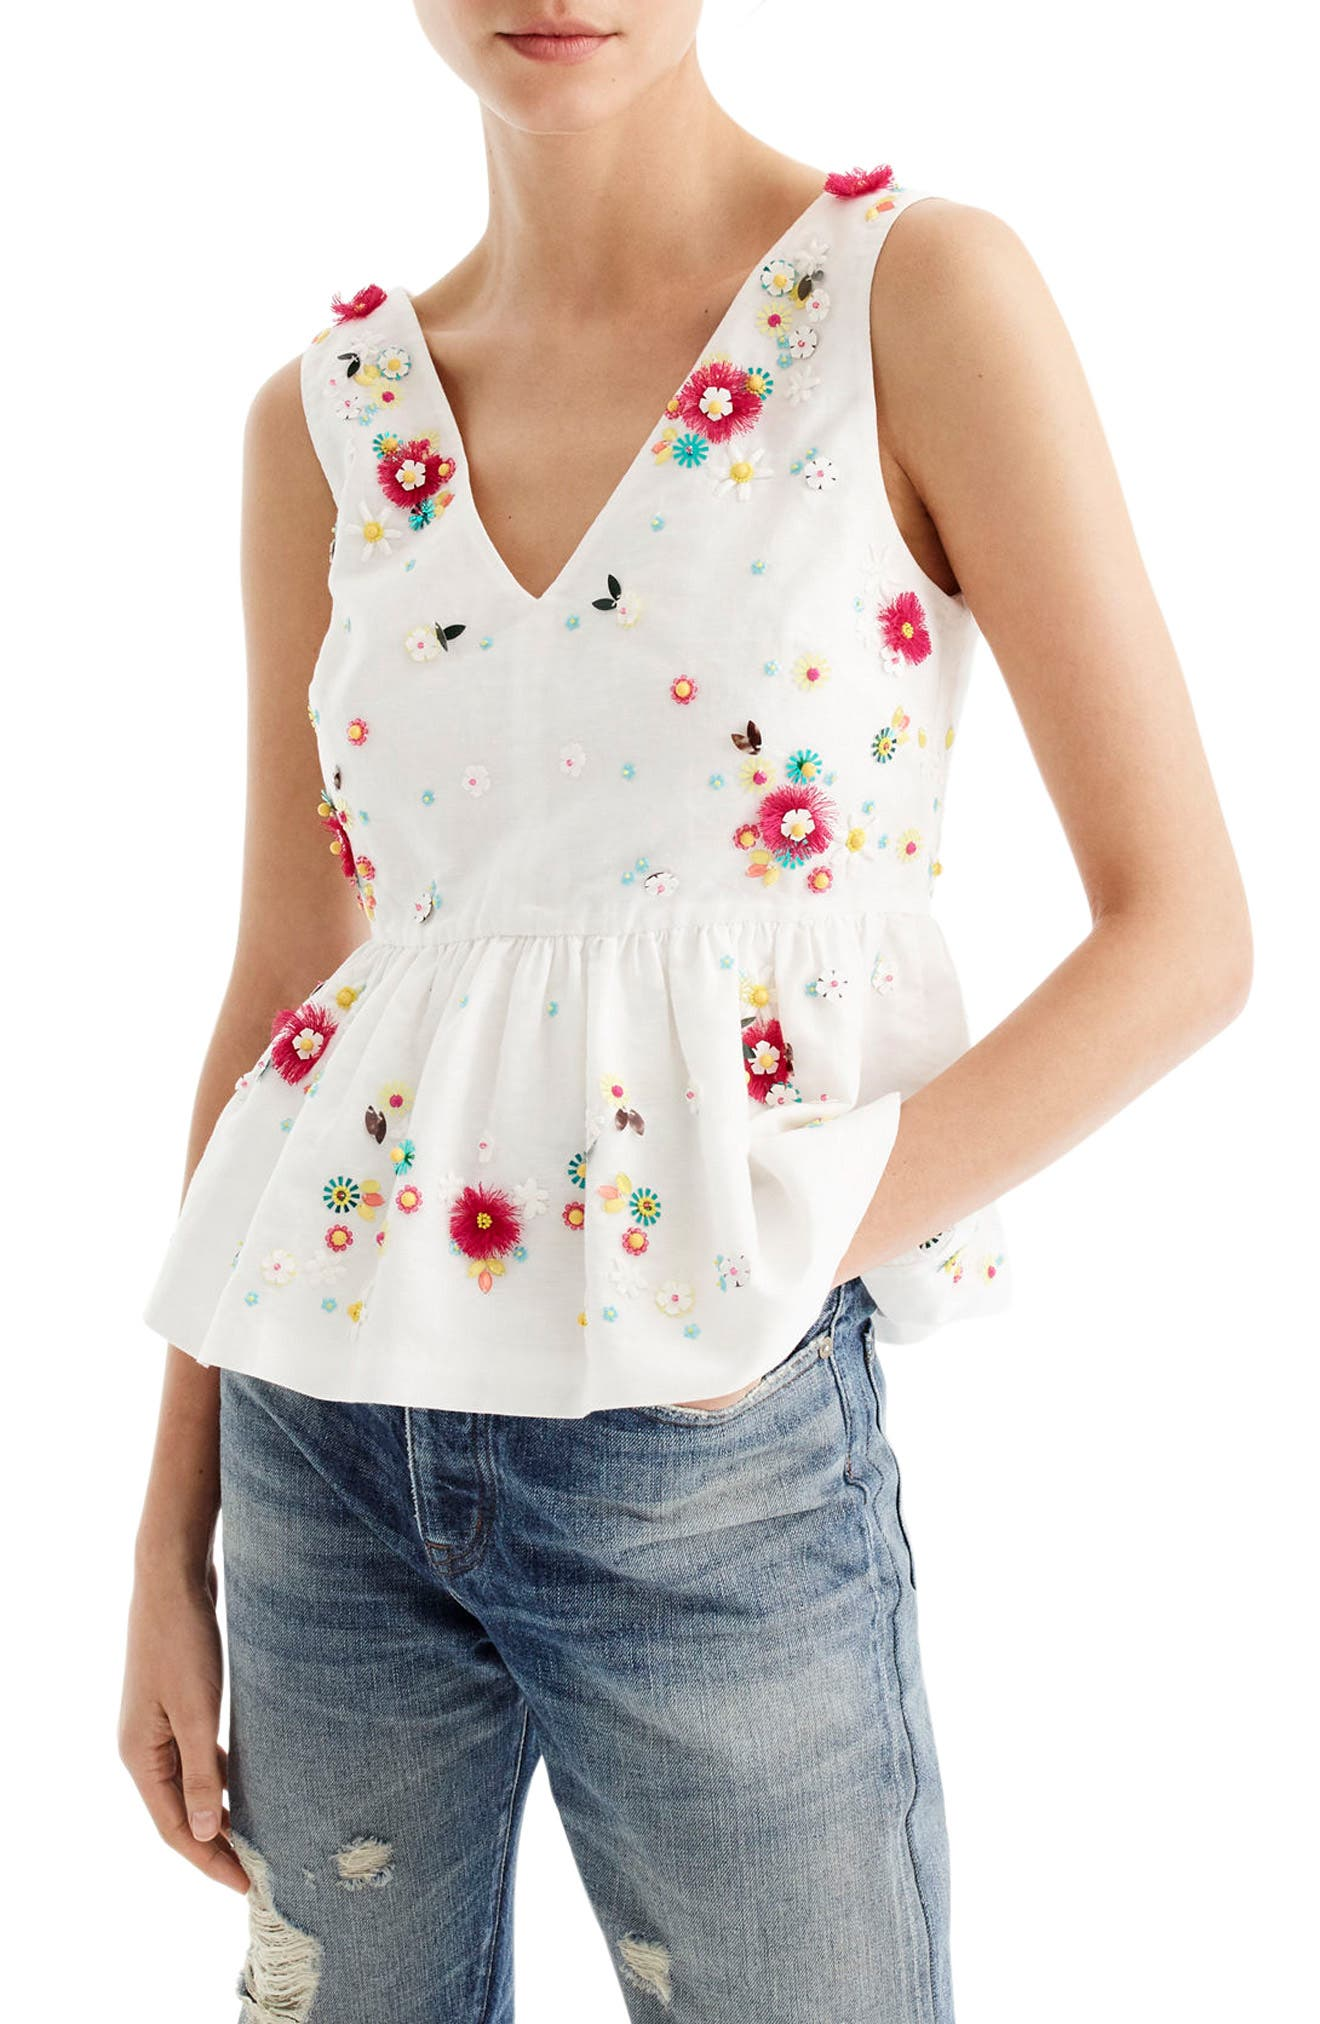 J.Crew Embellished Floral Top (Regular & Petite)